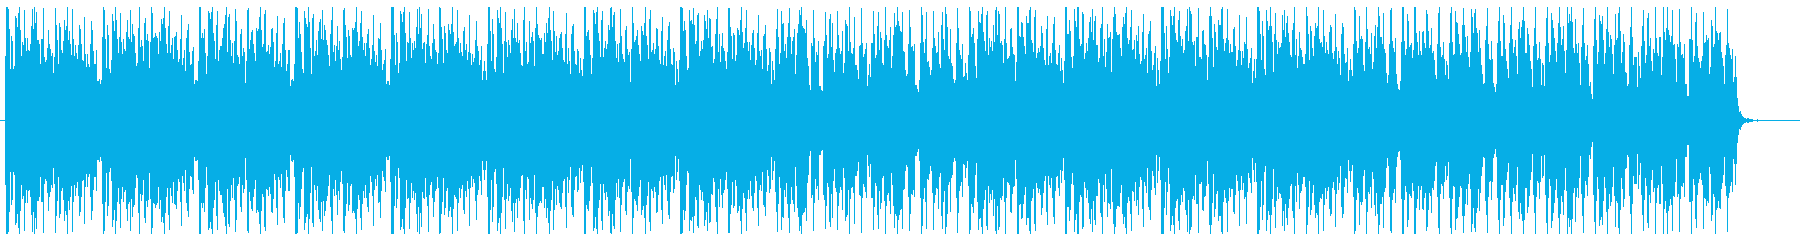 Dark and cool dance music's reproduced waveform